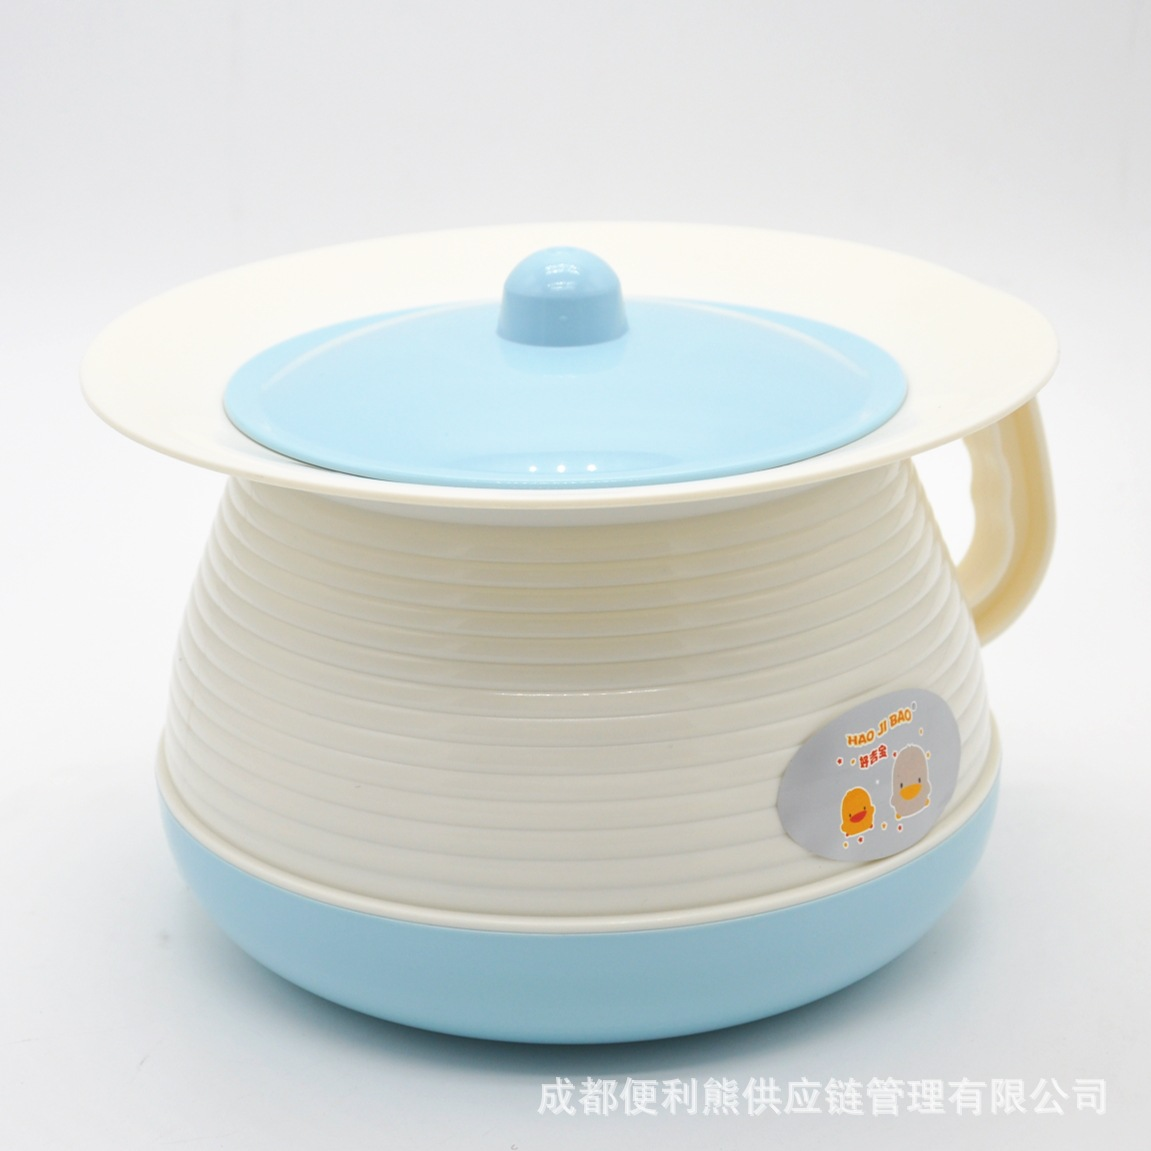 Spittoon Plastic Thick Children Household Bedpan Urinal Pedestal Pan Men And Women With Small Adult Hospital Urinal Bucket